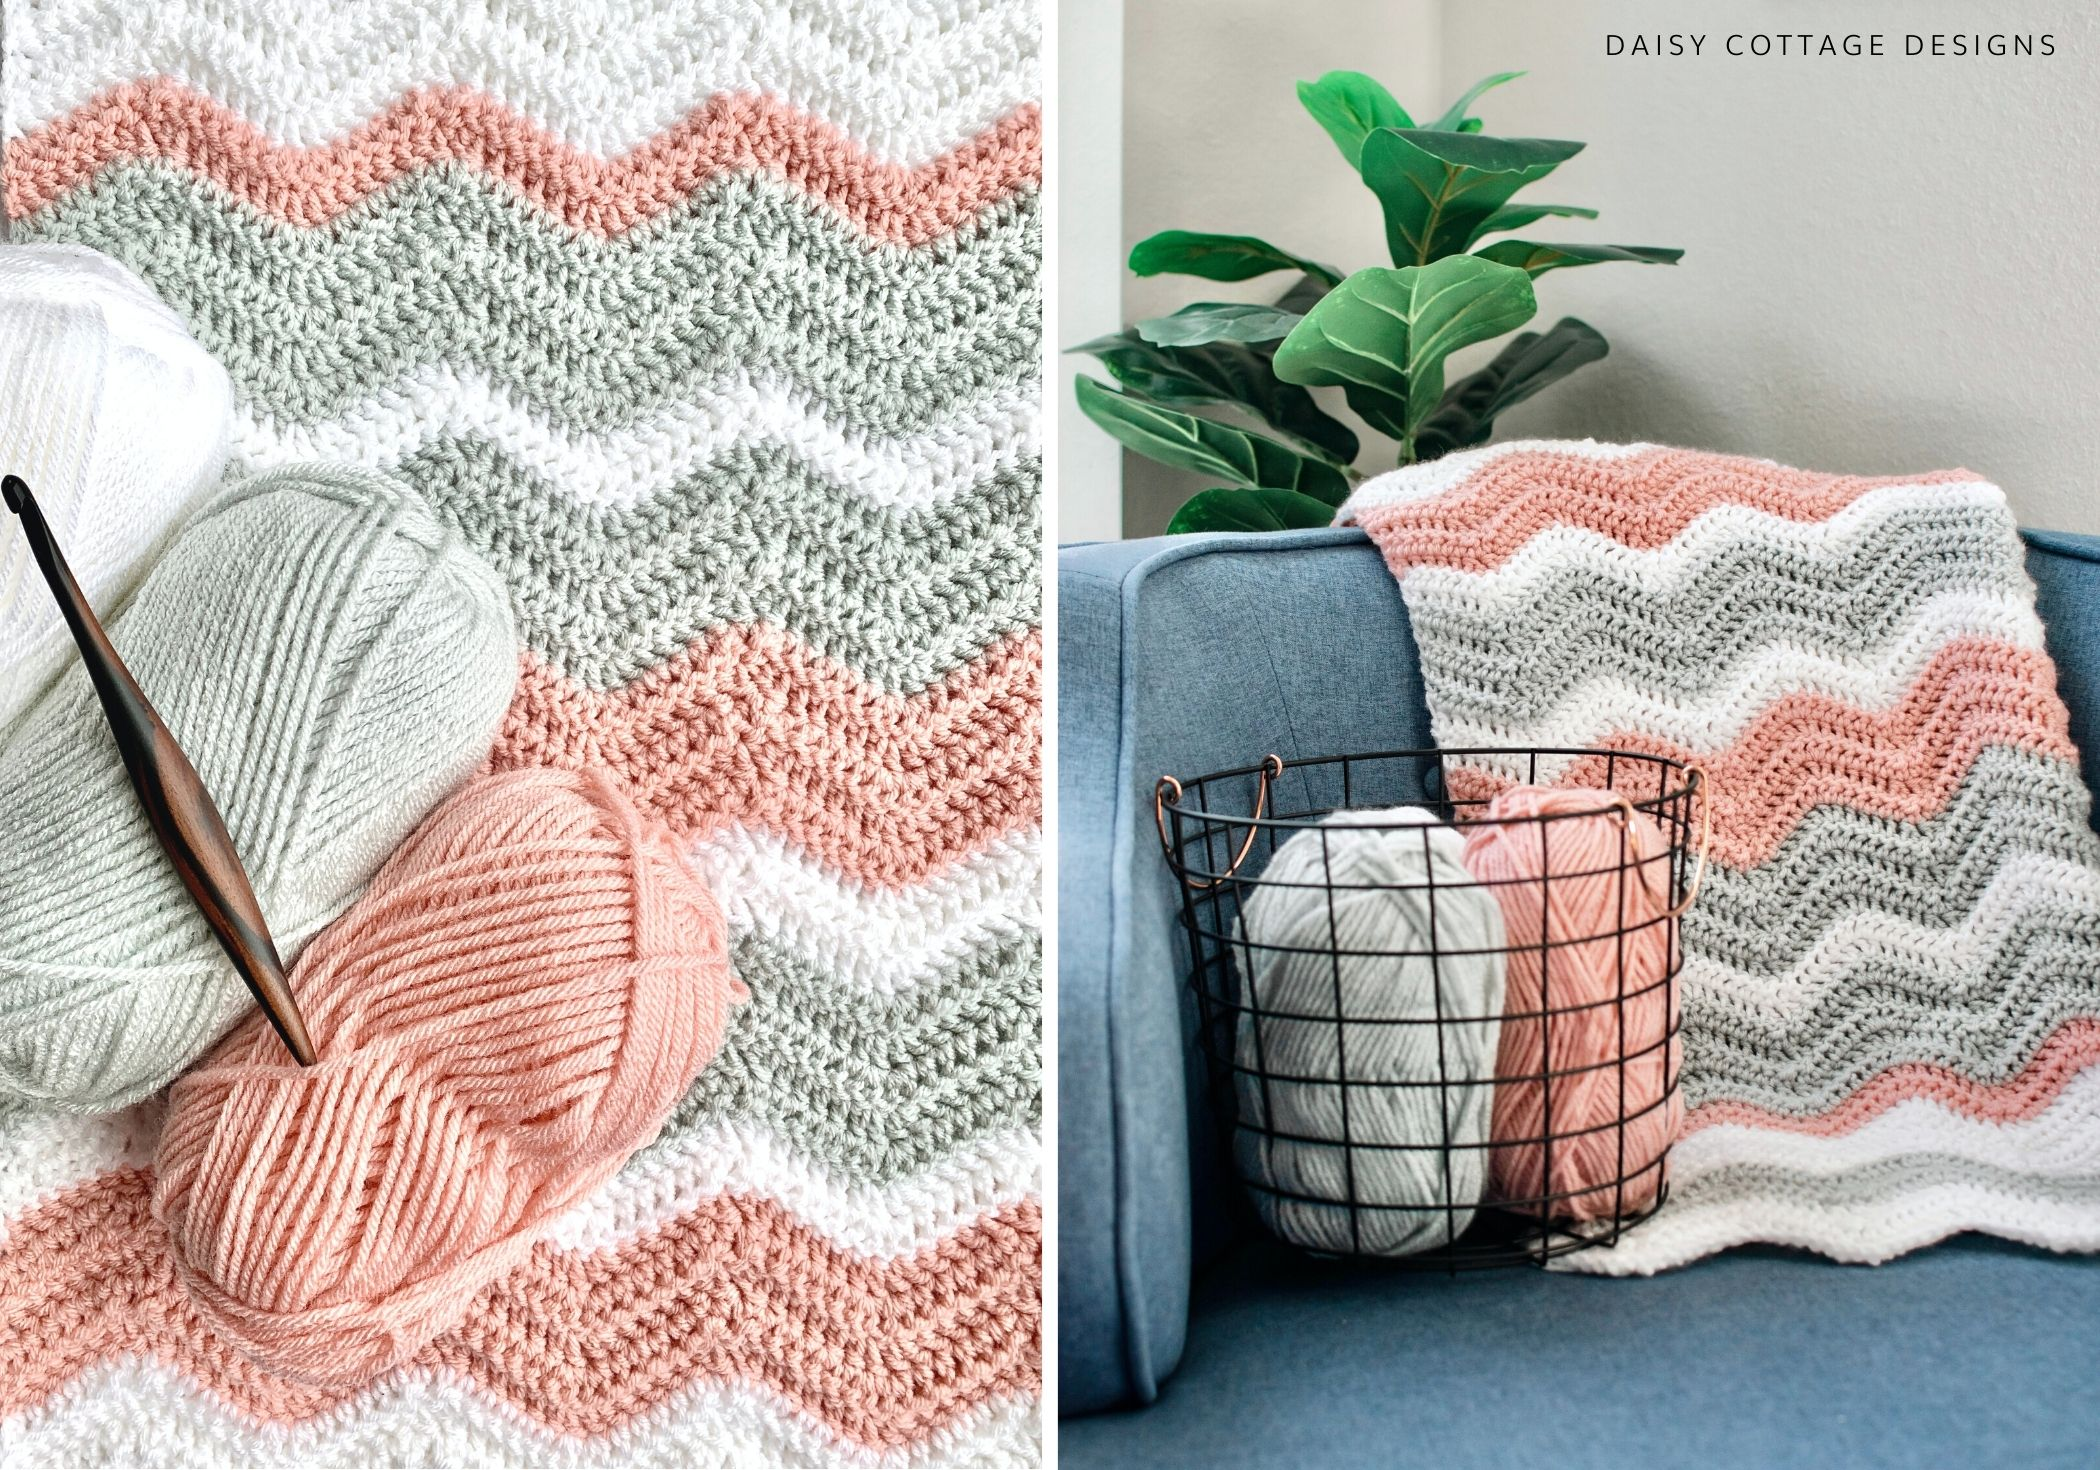 Free Crochet Blanket Patterns For Toddlers : Ripple Blanket Crochet Pattern - Daisy Cottage Designs